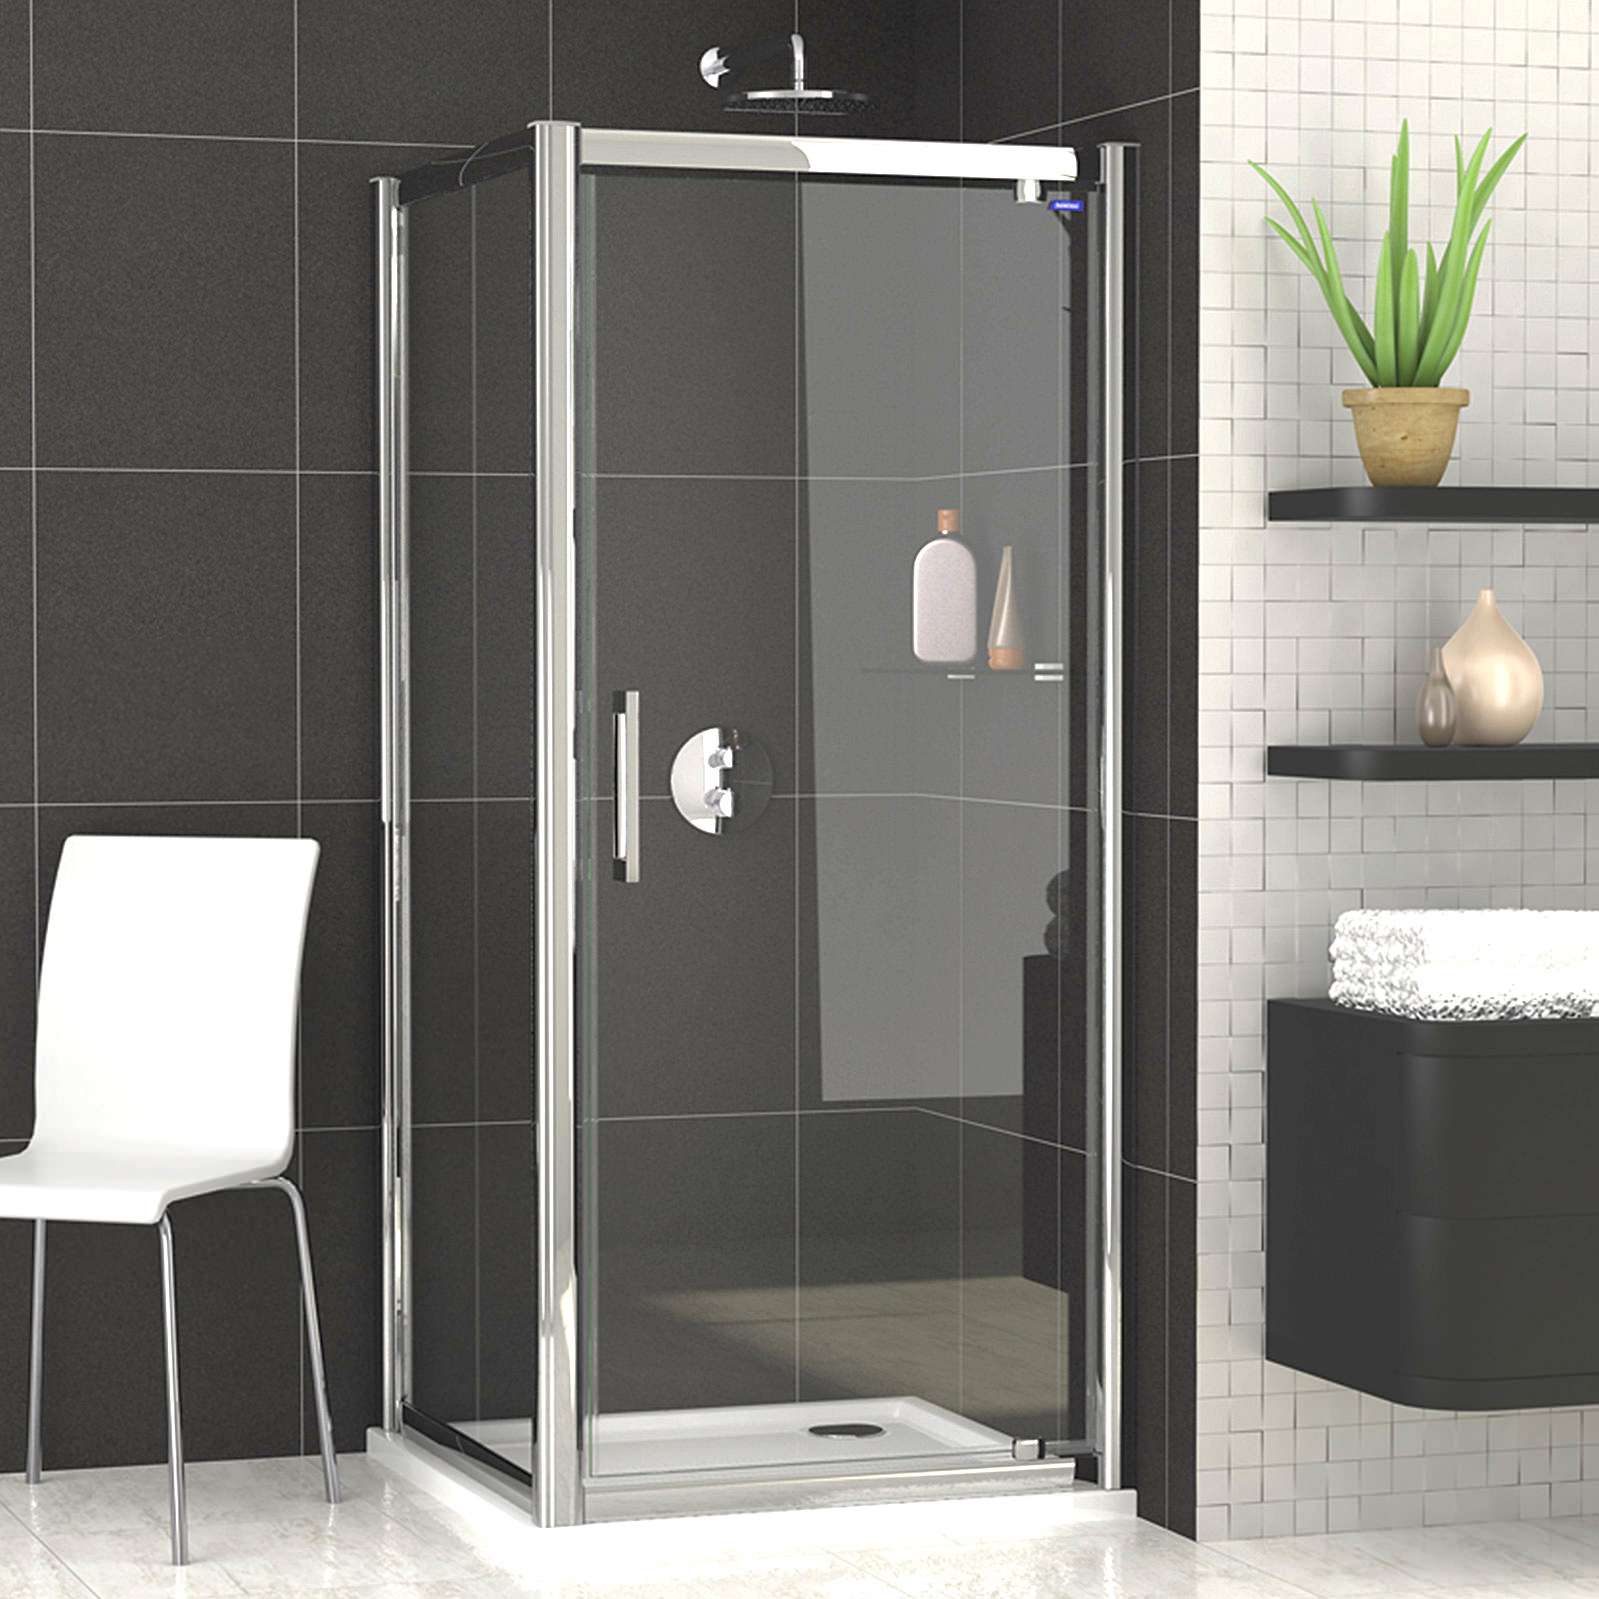 Showerlux legacy pivot shower door 1000mm for 1000mm shower door